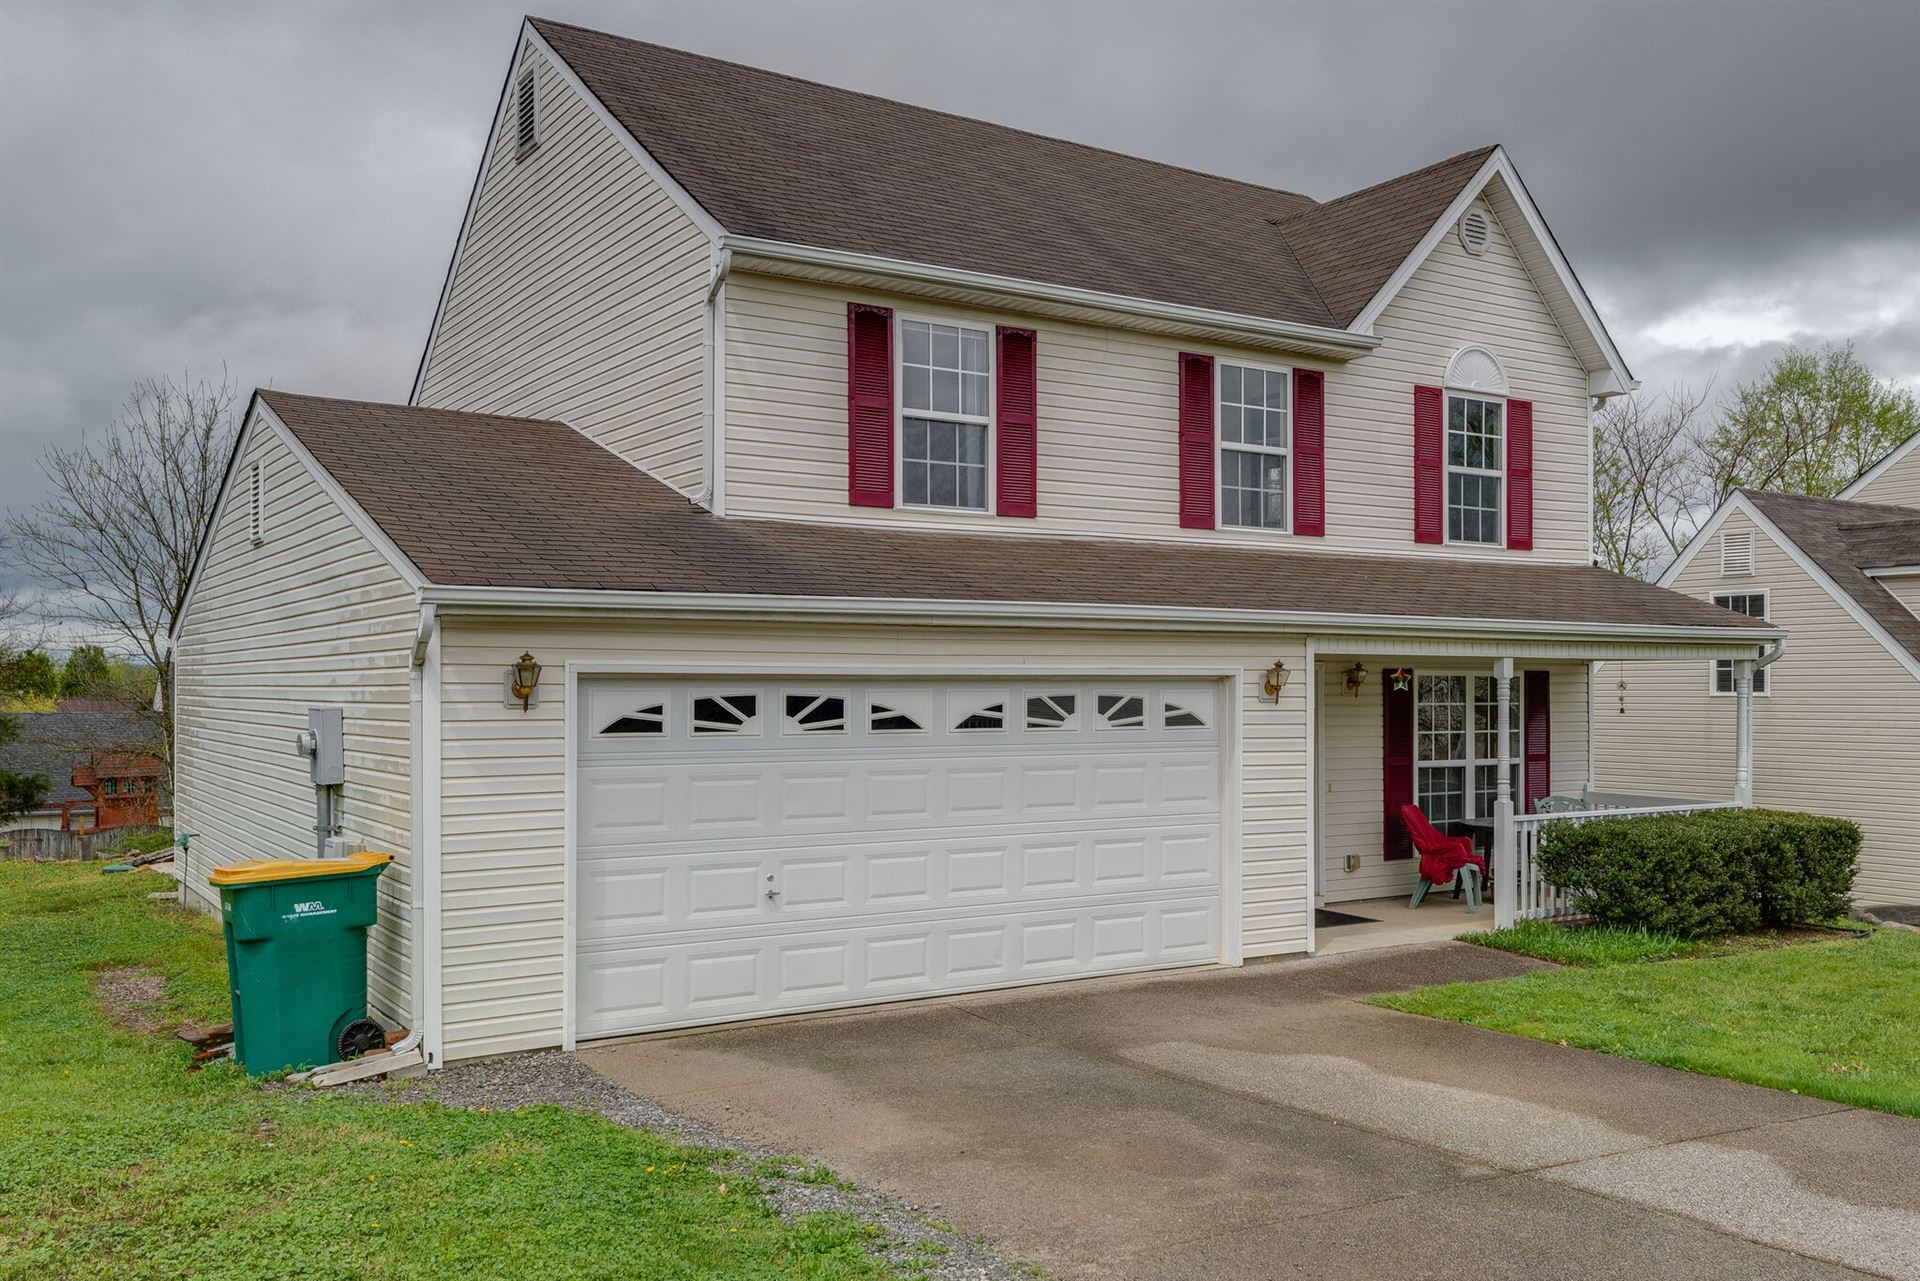 Photo of 1034 Vanguard Dr, Spring Hill, TN 37174 (MLS # 2243667)